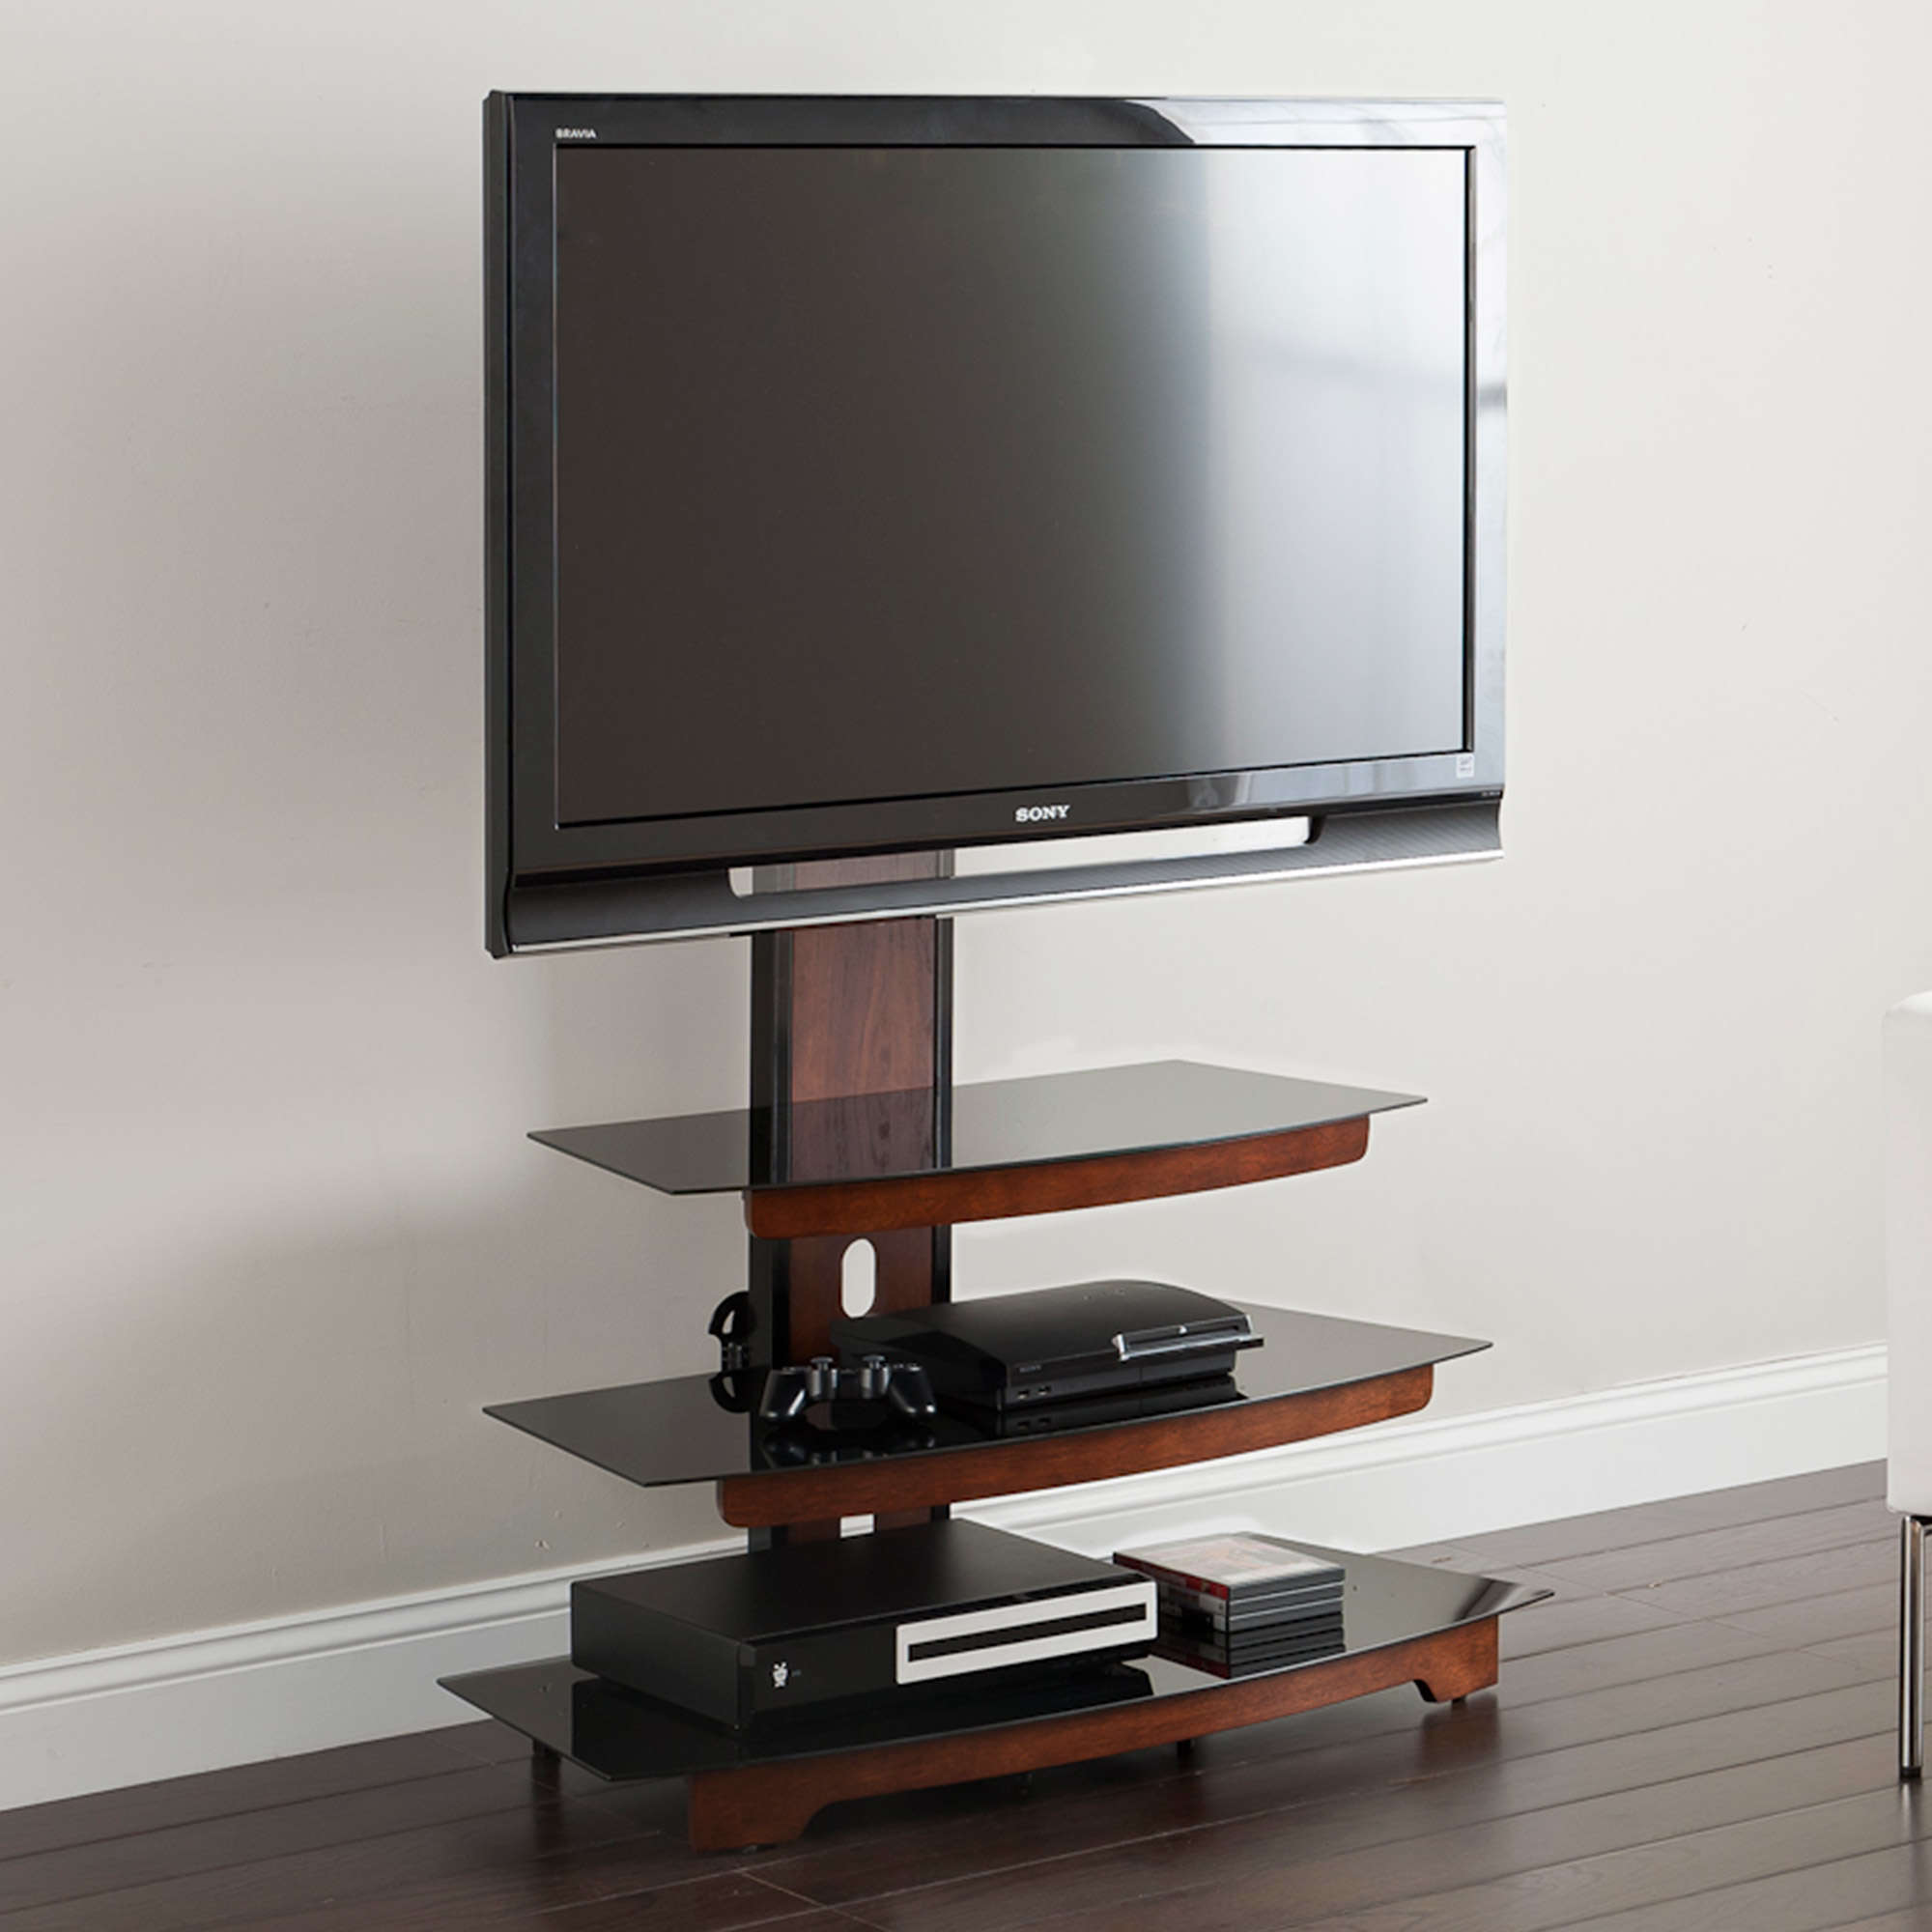 Whalen 3 Tier Television Stand For Tvs Up To 50 Perfect For Flat Screens Black Metal With Wood Trim Accent Walmart Com Walmart Com